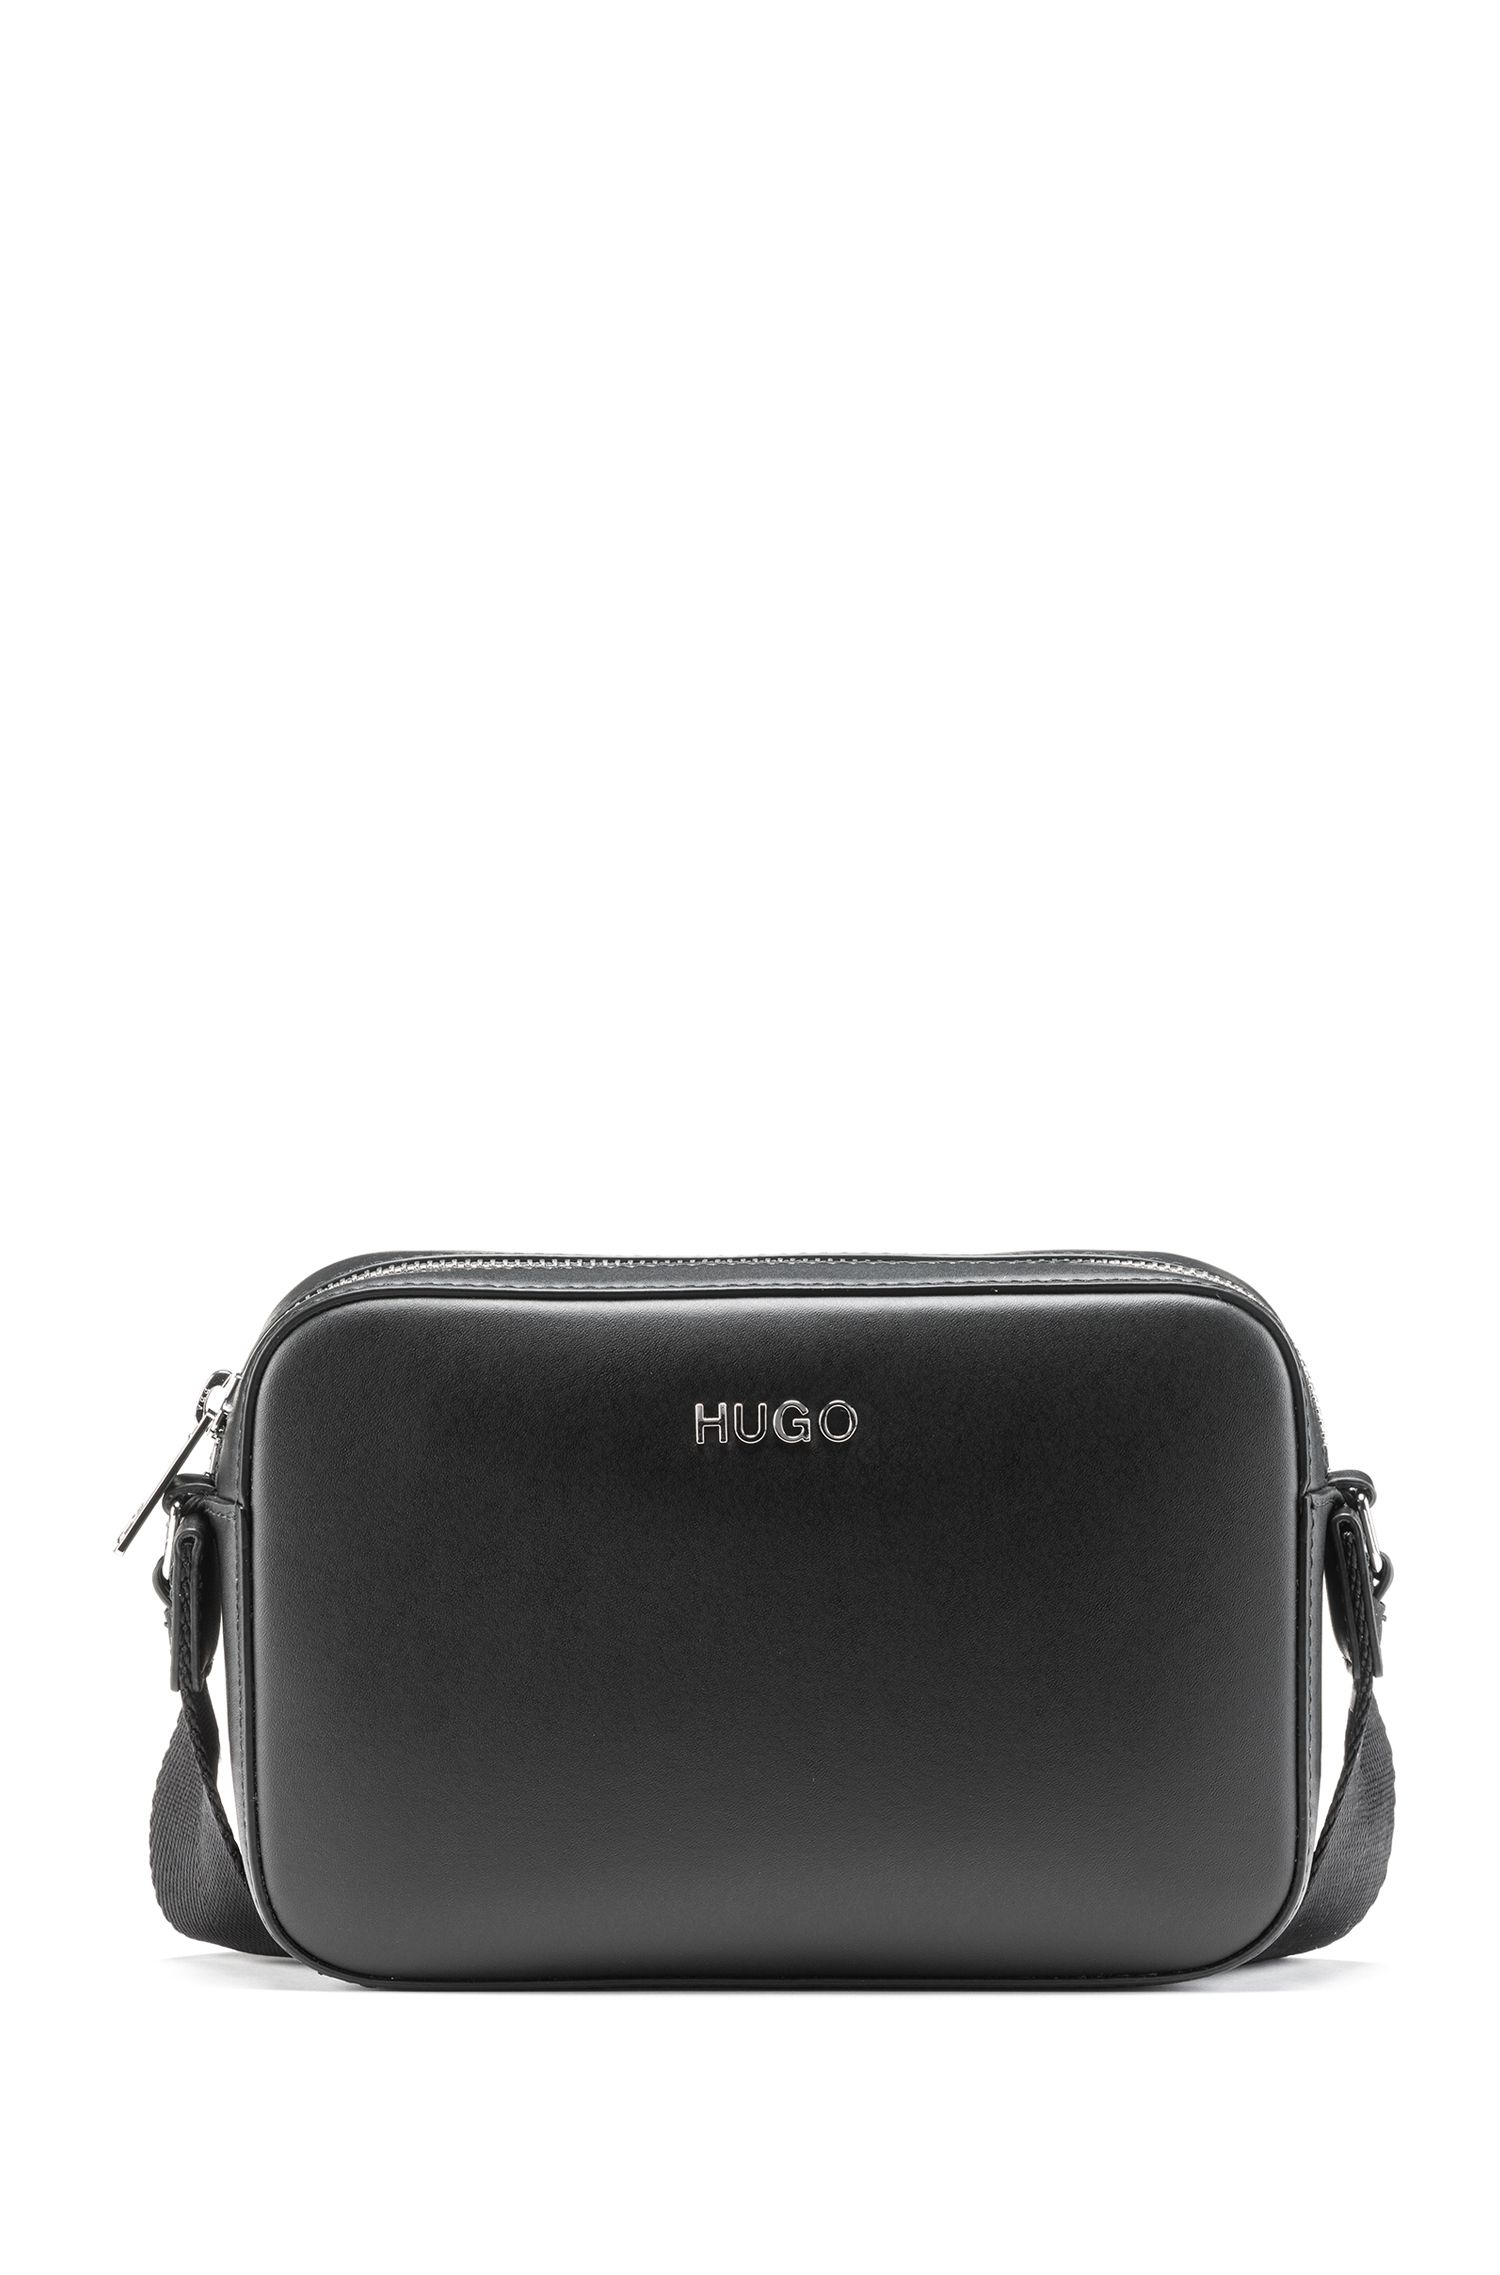 Crossbody bag in Italian leather with logo strap, Black